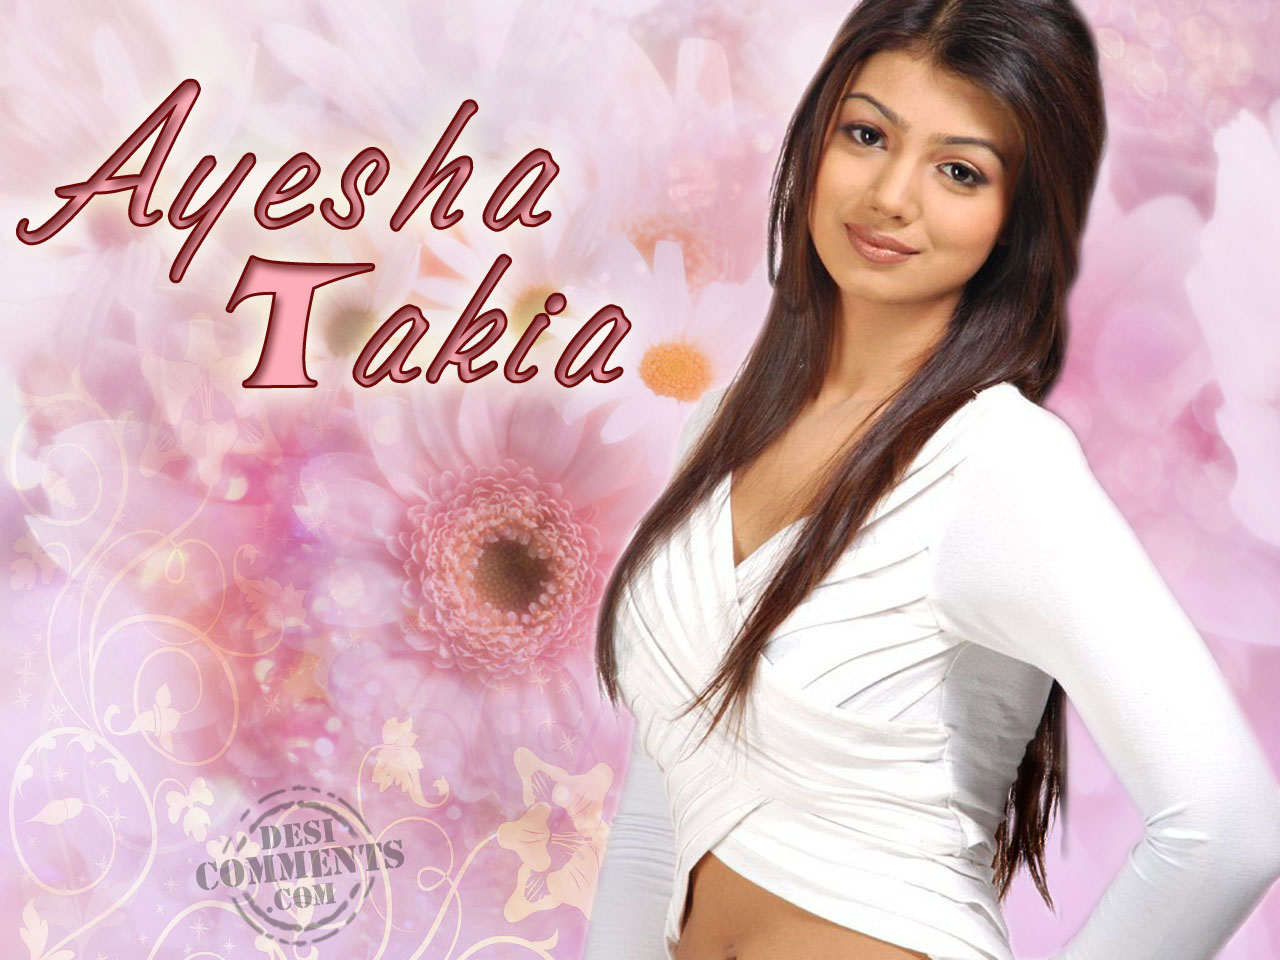 Ayesha takia hot boobs images mom! Lucky